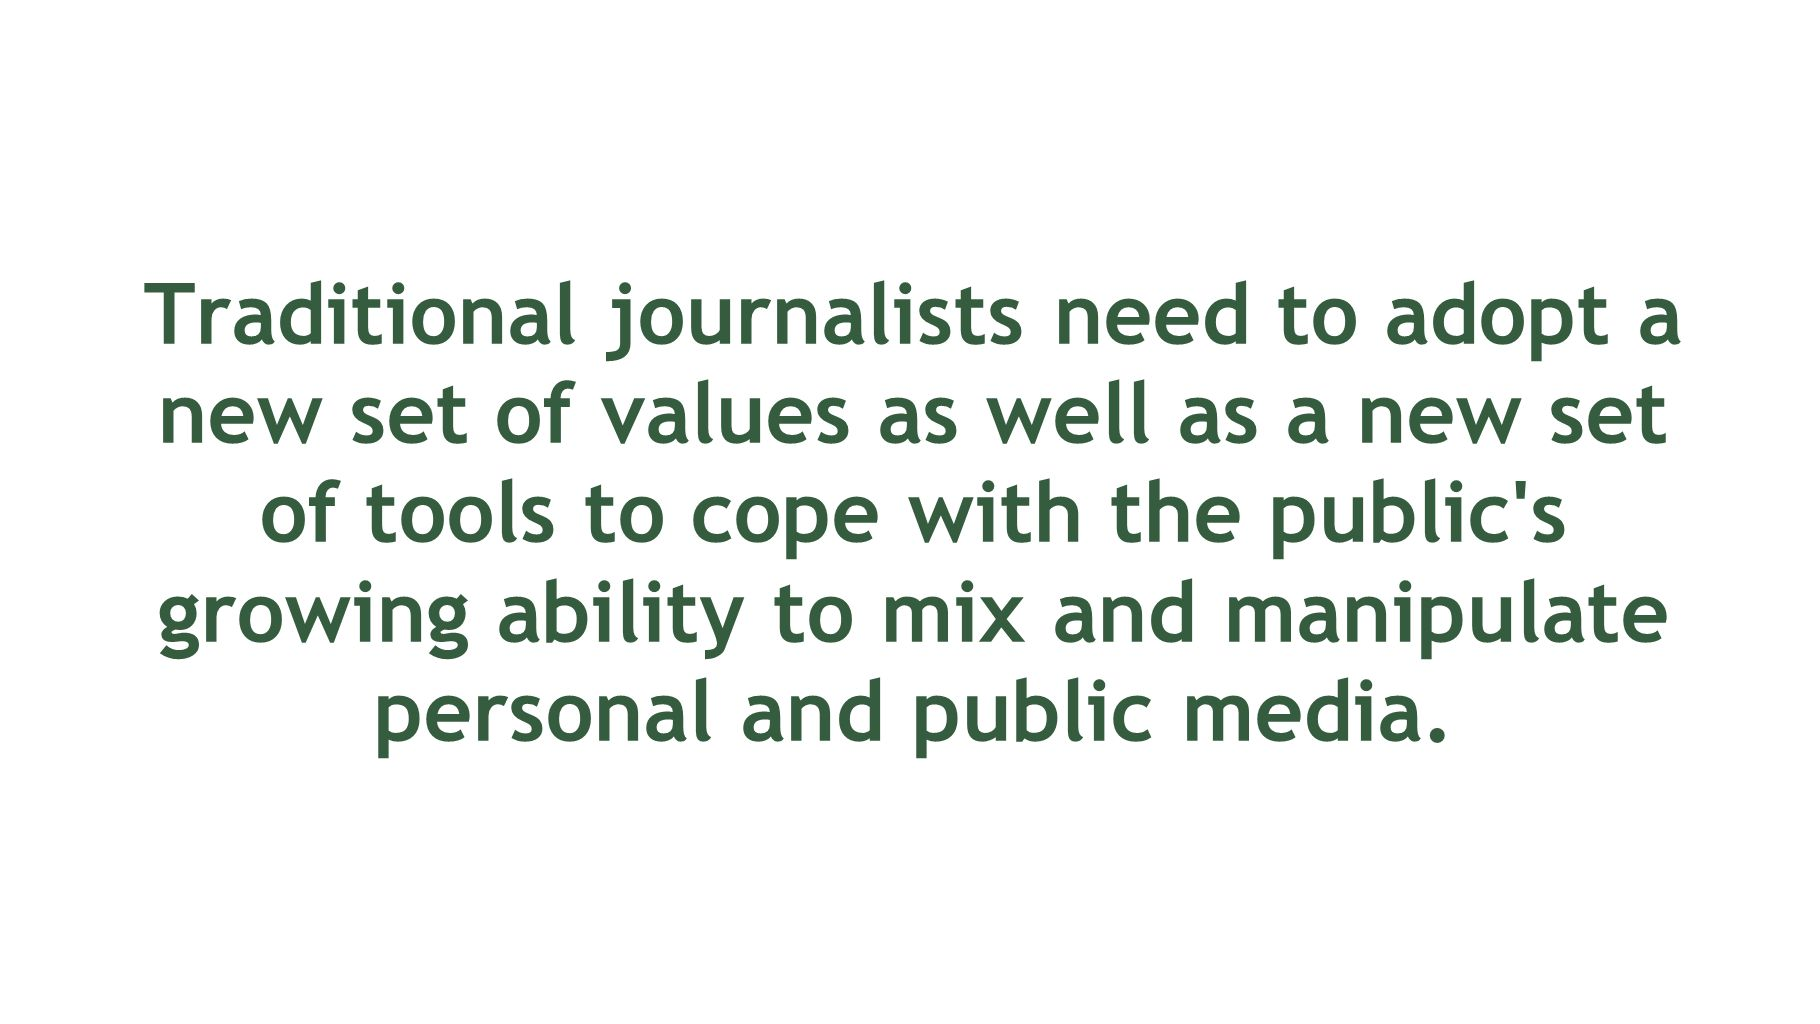 Traditional journalists need to adopt a new set of values as well as a new set of tools to cope with the public s growing ability to mix and manipulate personal and public media.